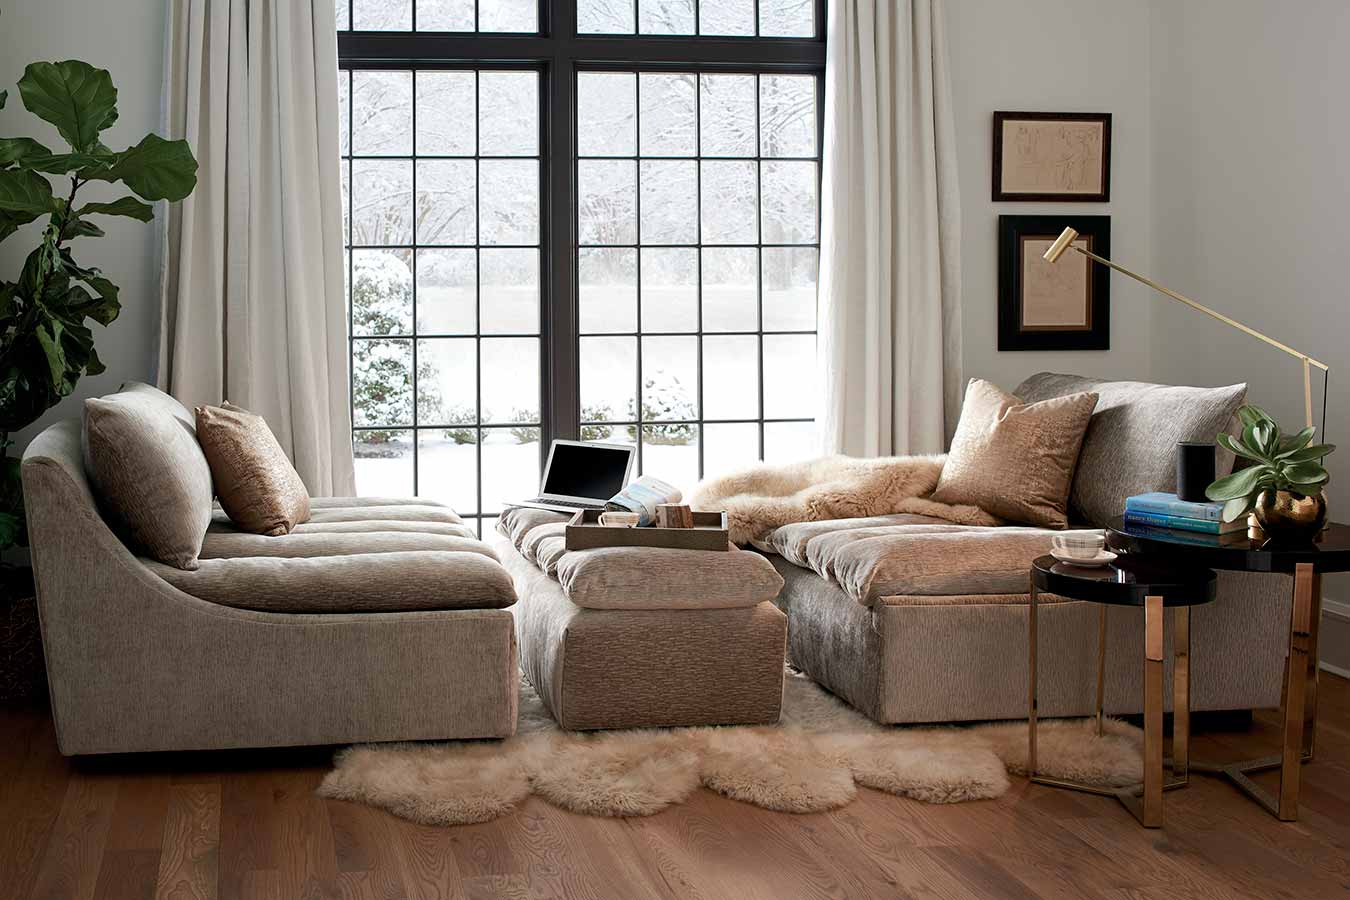 Living Room | Contemporary Luxury Designer Modern Exclusive Handcrafted Furniture | Sandton